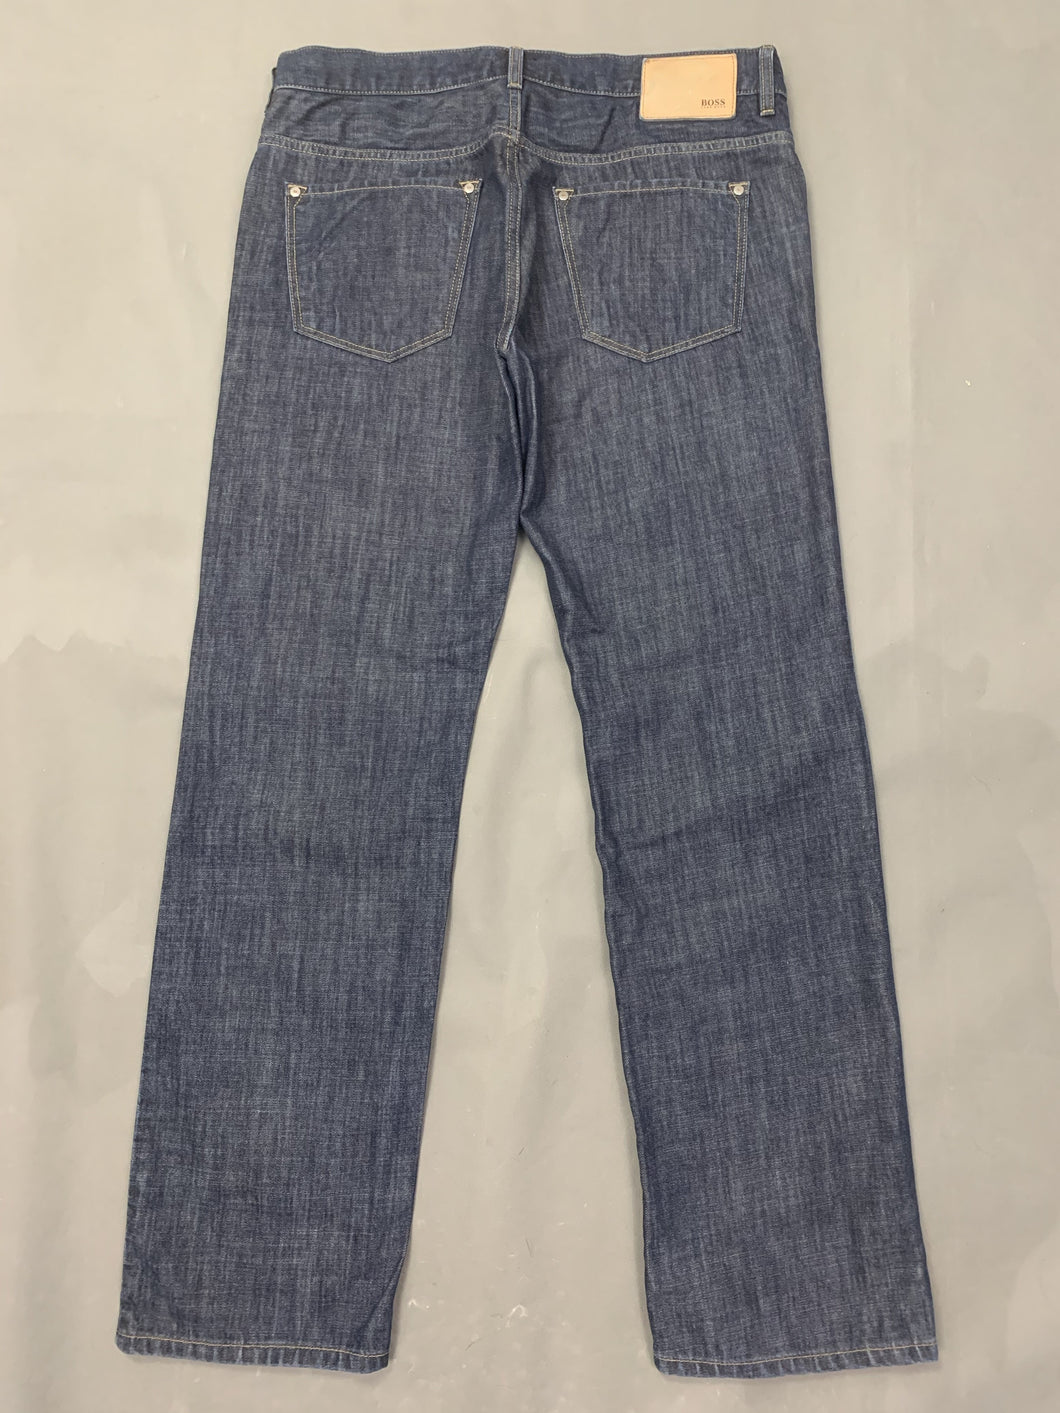 HUGO BOSS Mens KANSAS Blue Denim Regular Fit JEANS Size Waist 34